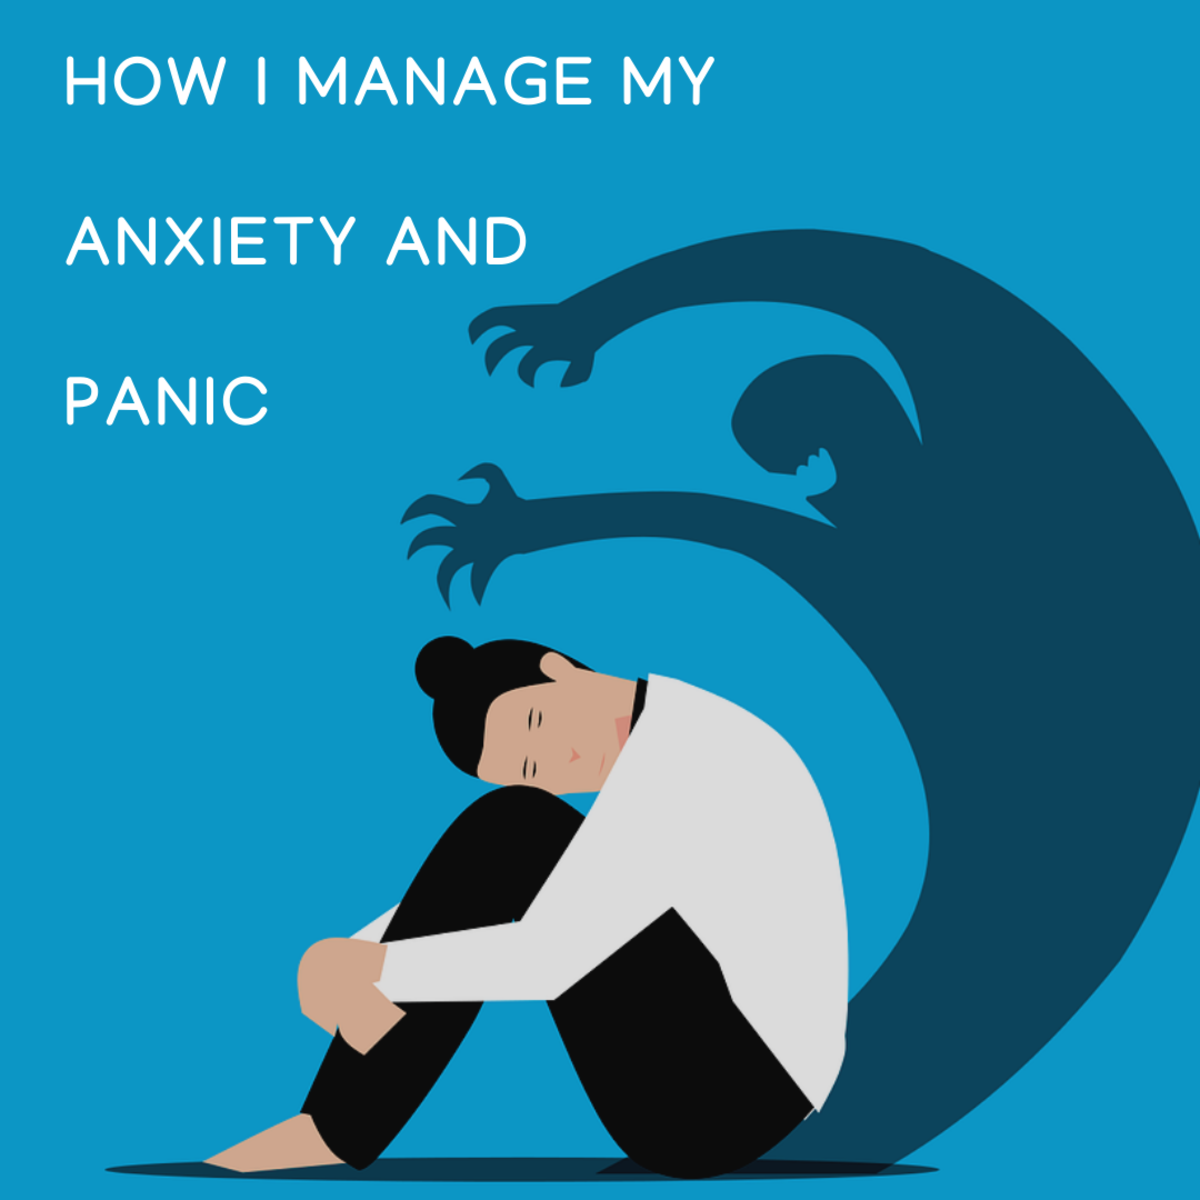 Here are some tips for dealing with anxiety from a PTSD sufferer. They don't cure anxiety, but they often work for me to short-circuit the symptoms in mid-freak-out.